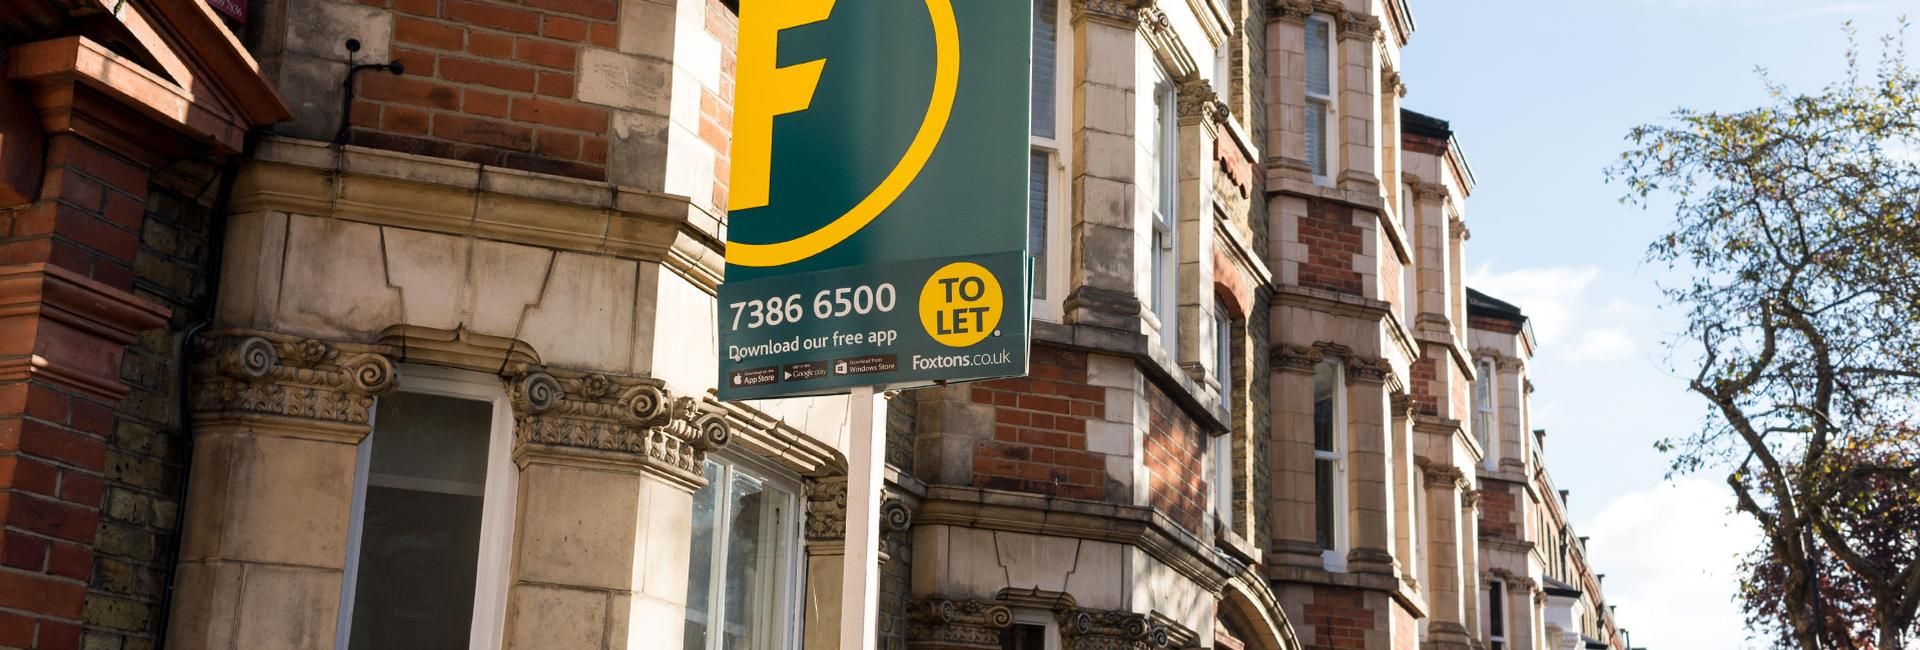 UK lettings market report - To let board